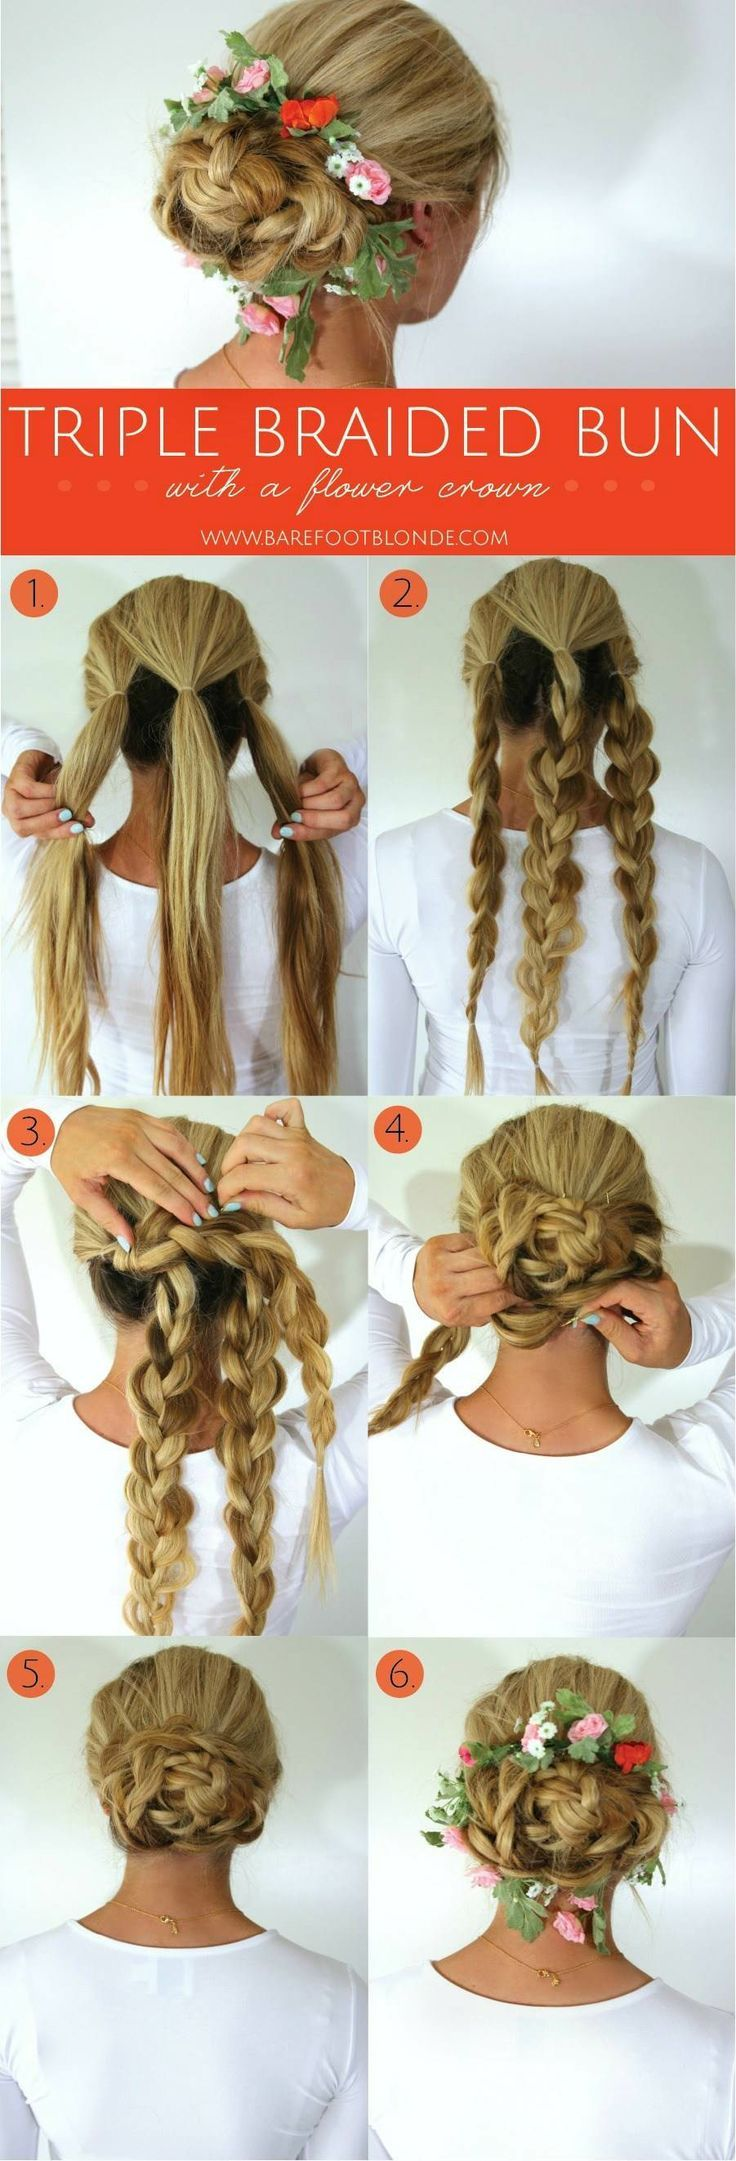 Braided hairstyles earned their popularity among women for their versatile styles and shapes. They are also a best way to deal with your medium or long hair in some formal occasions. Compared with other hairstyles, the braided hairstyles show more elegant and stunning for those young ladies to pair with their gorgeous evening dress. Today,[Read the Rest]